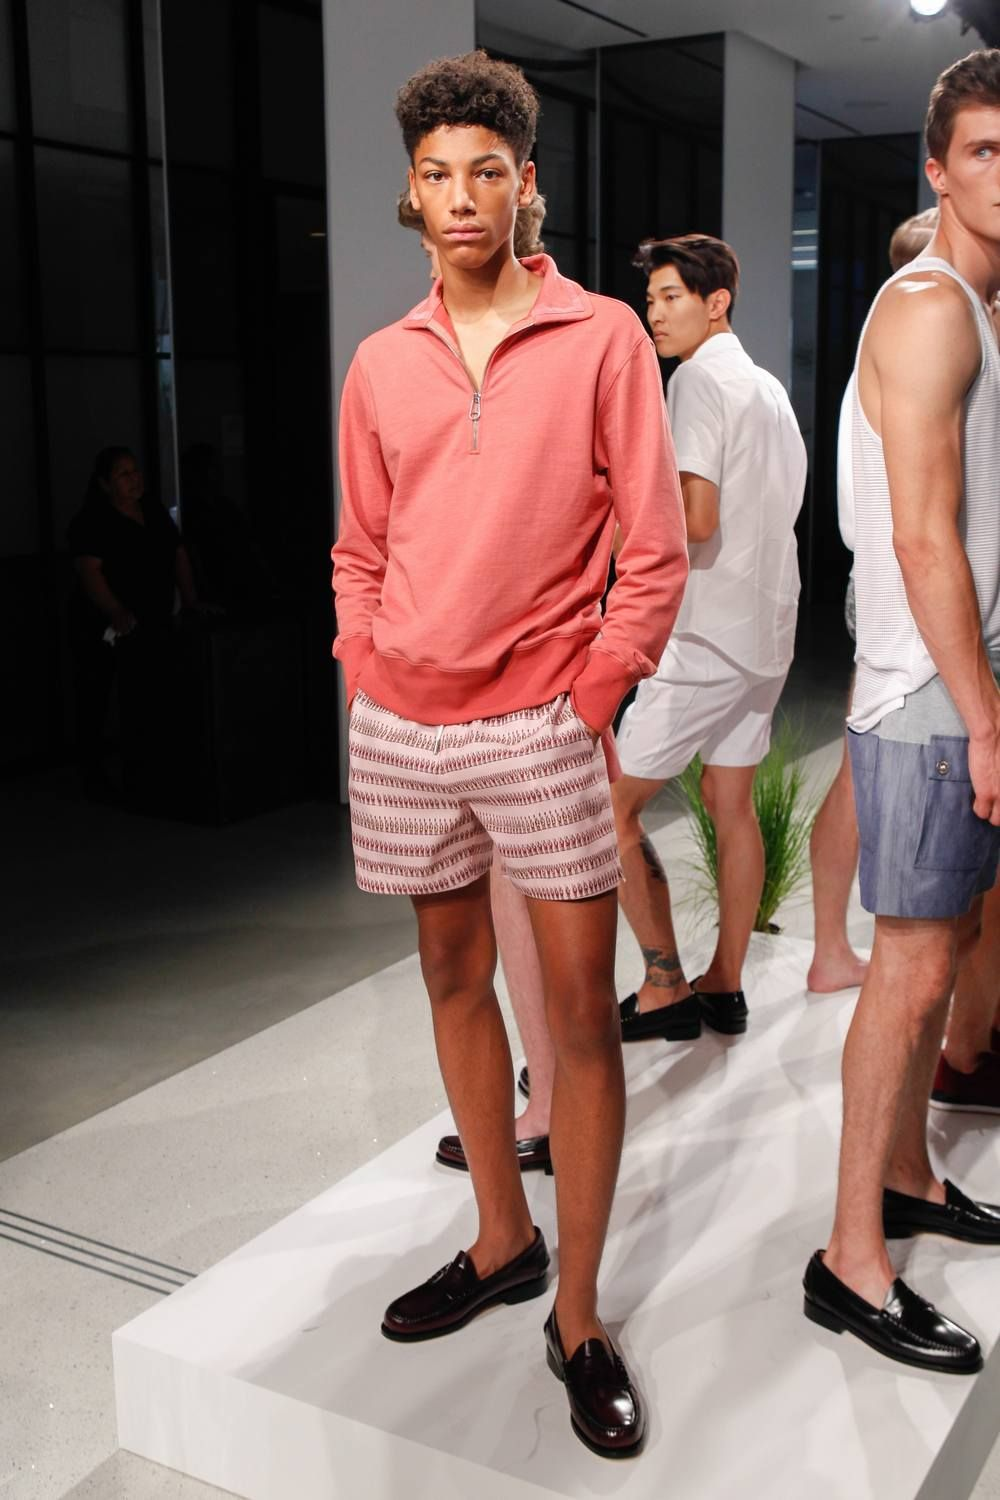 Katama springsummer new york fashion week menus guy clothes